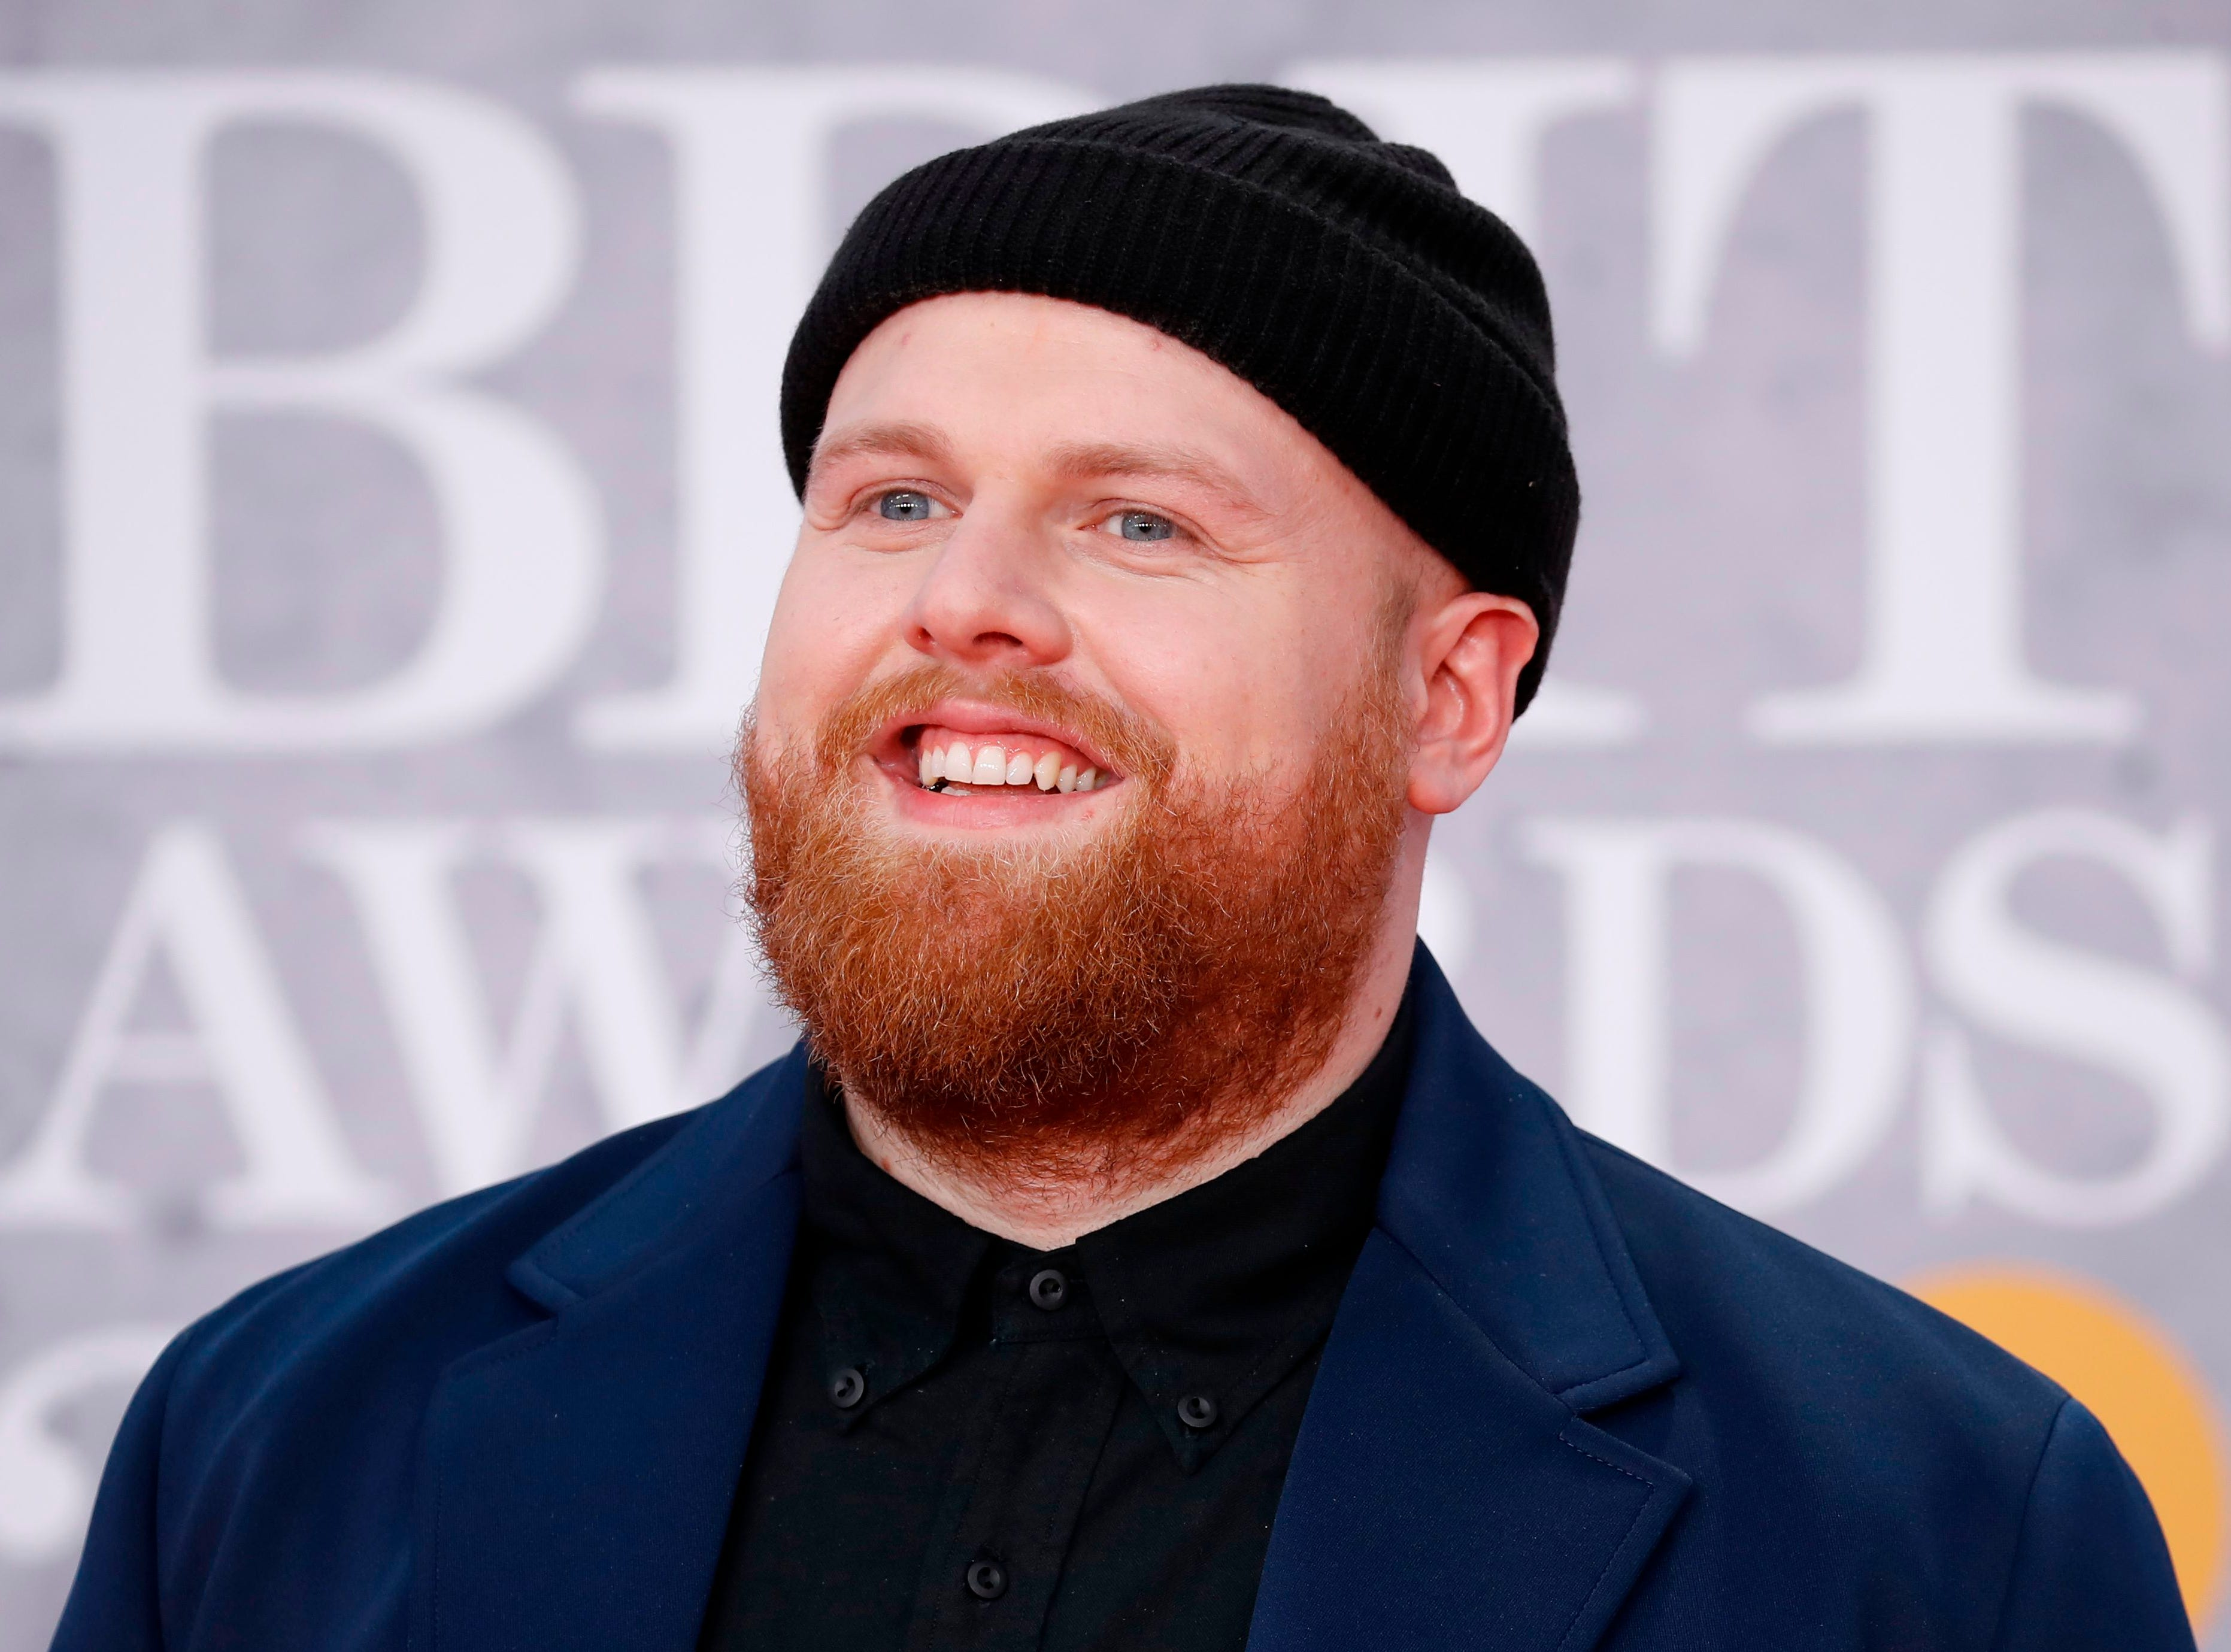 British singer-songerwriter Tom Walker poses on the red carpet on arrival for the BRIT Awards 2019 in London on February 20, 2019. (Photo by Tolga AKMEN / AFP) / RESTRICTED TO EDITORIAL USE  NO POSTERS  NO MERCHANDISE NO USE IN PUBLICATIONS DEVOTED TO ARTISTSTOLGA AKMEN/AFP/Getty Images ORIG FILE ID: AFP_1DN9RQ